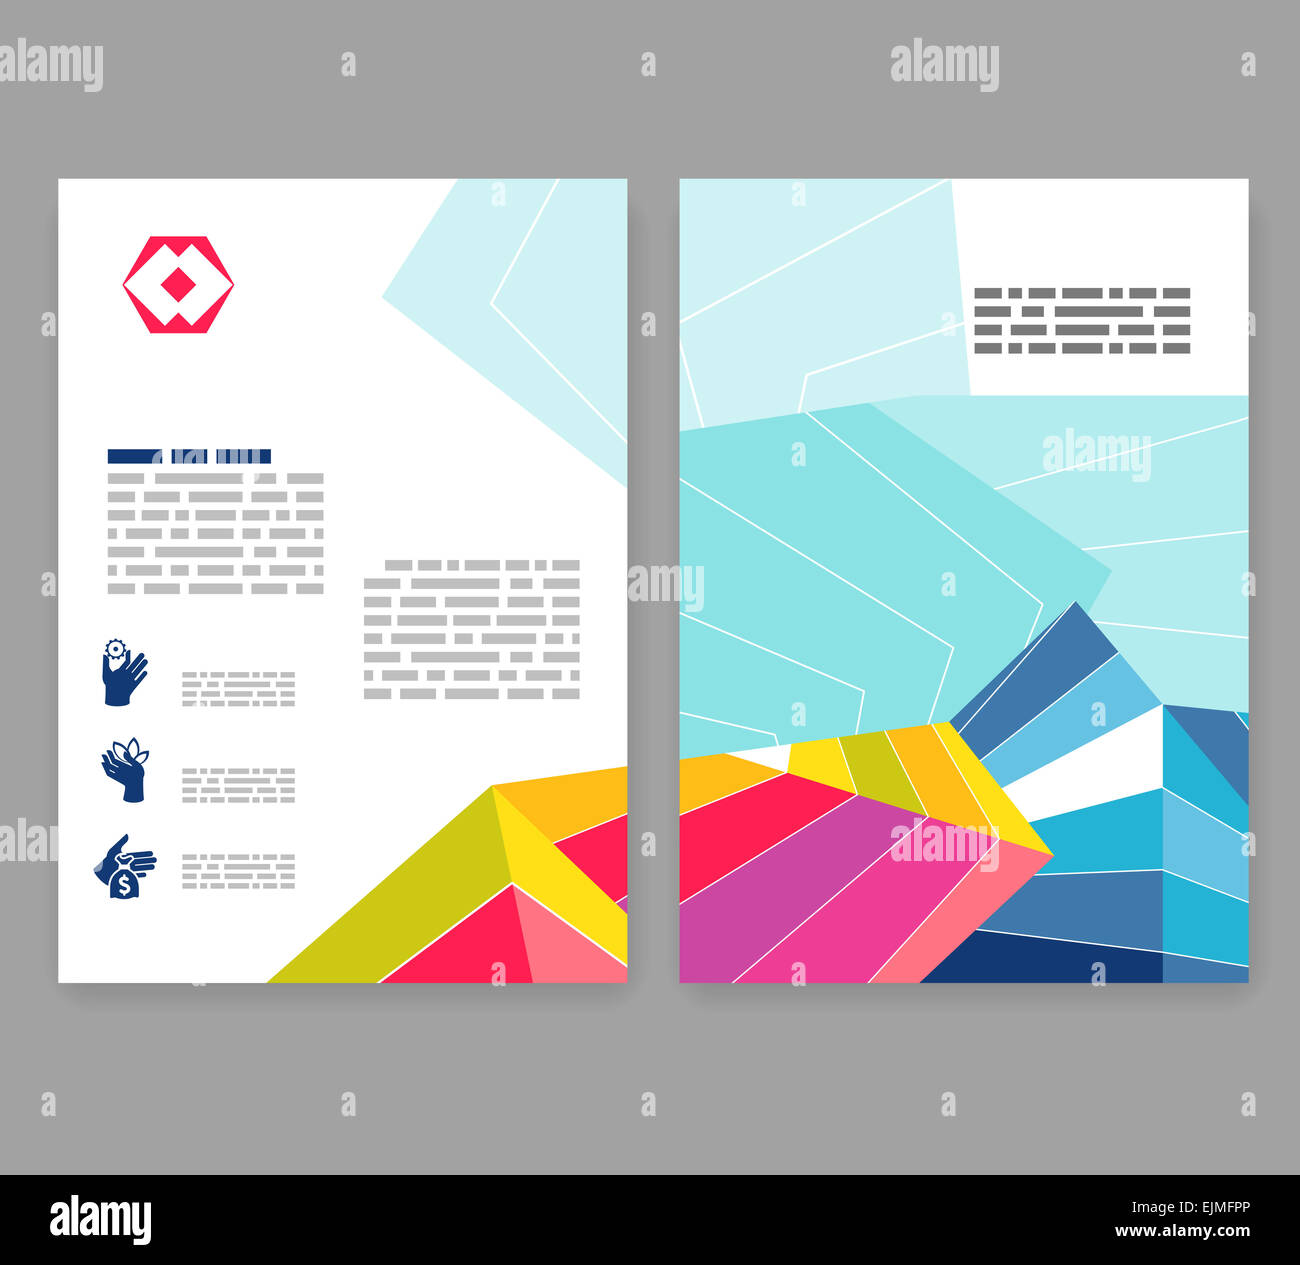 two fold brochure template - flyer leaflet booklet layout editable design template